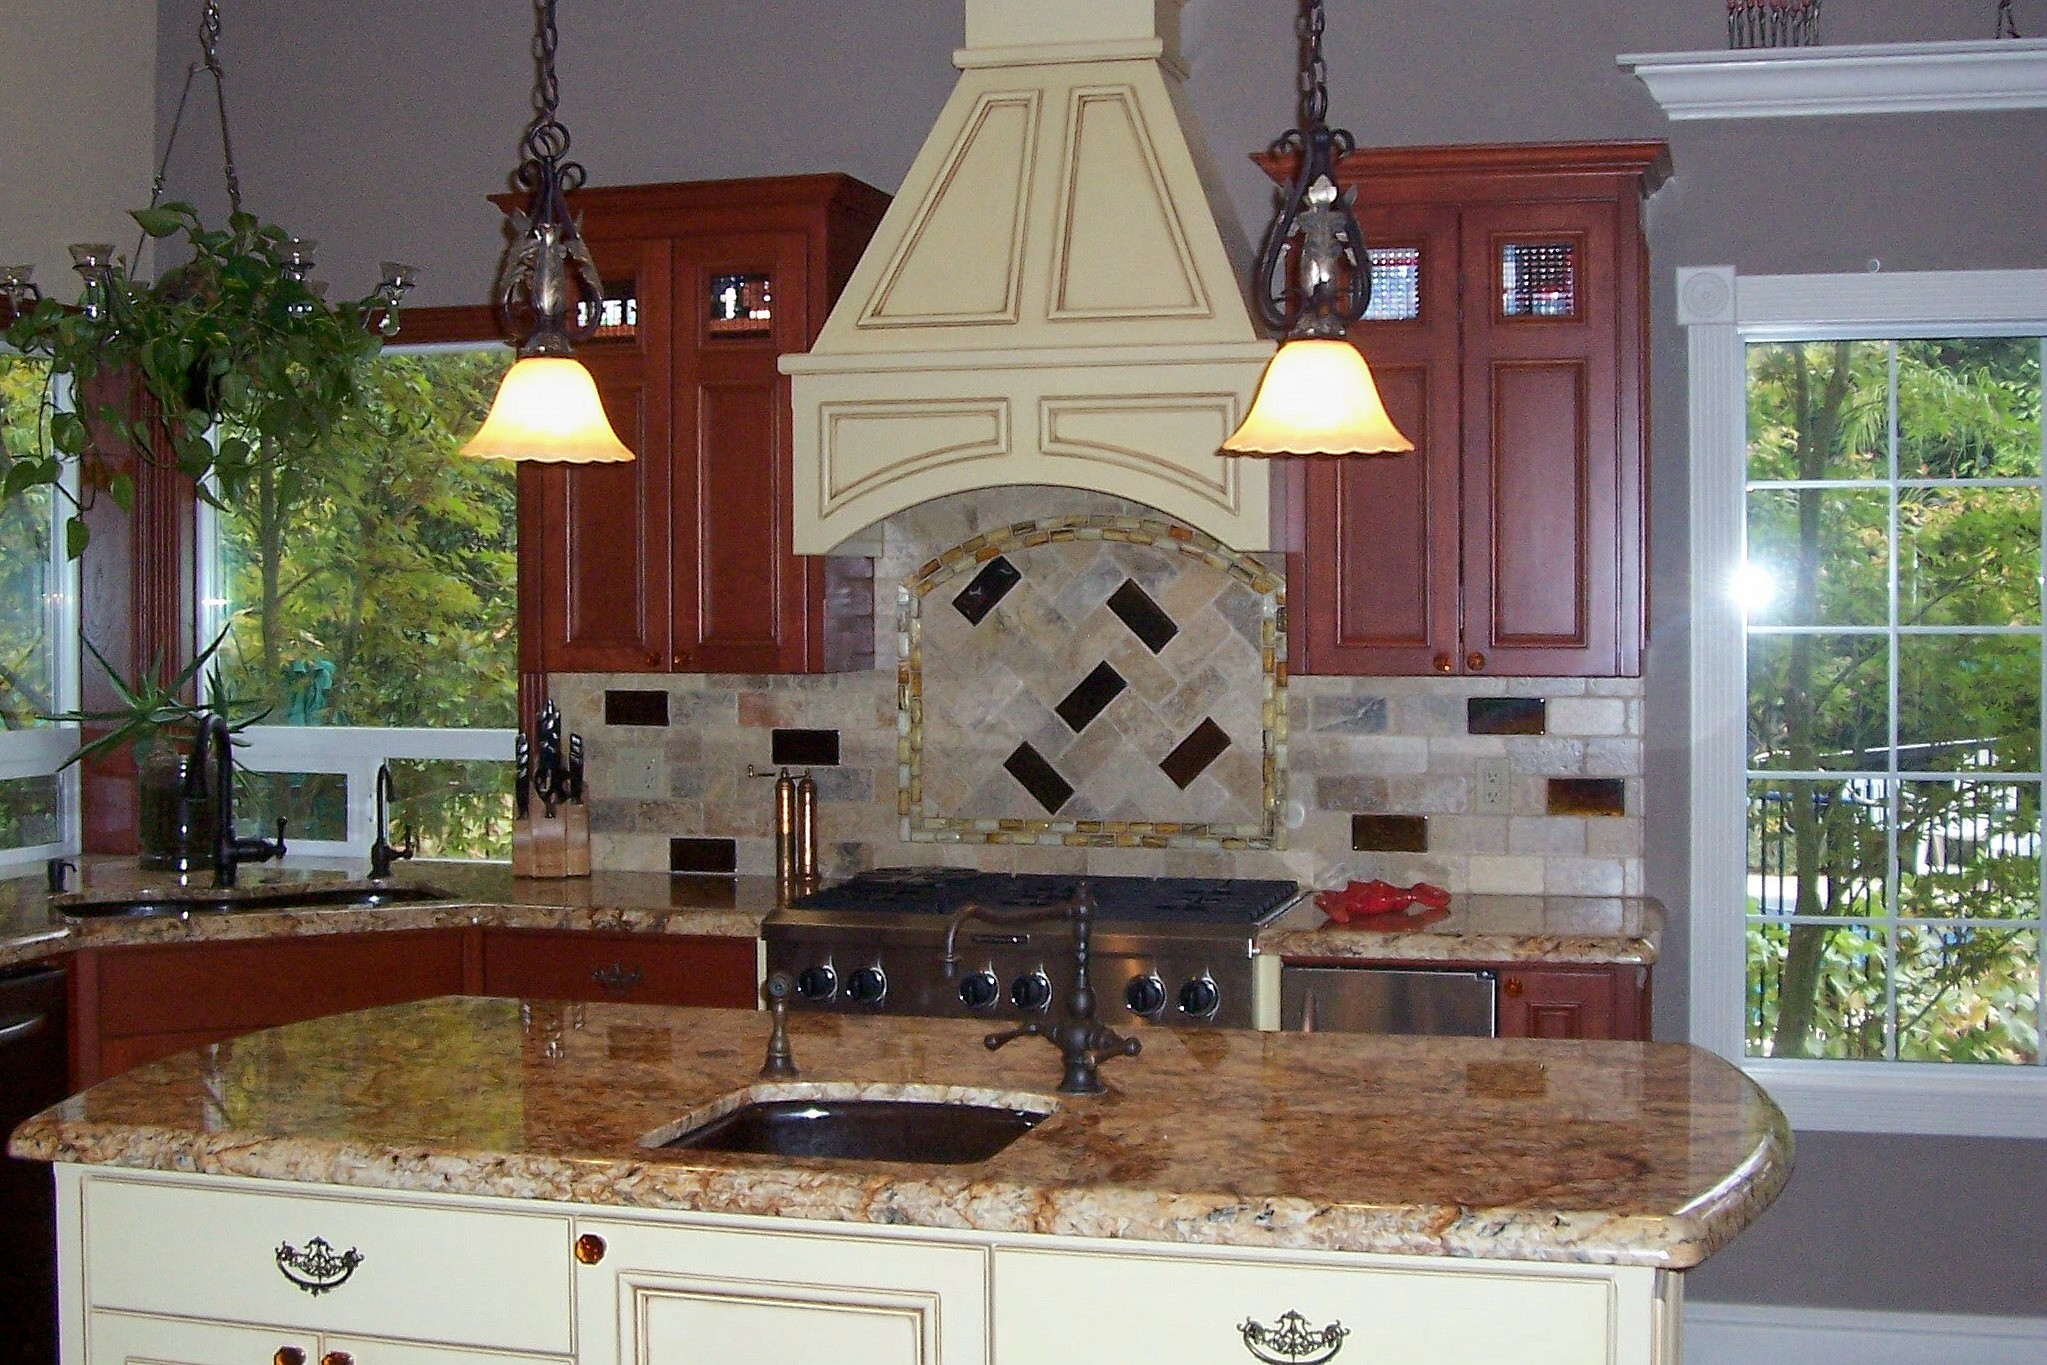 shasta-wood-products-residential-04.jpg